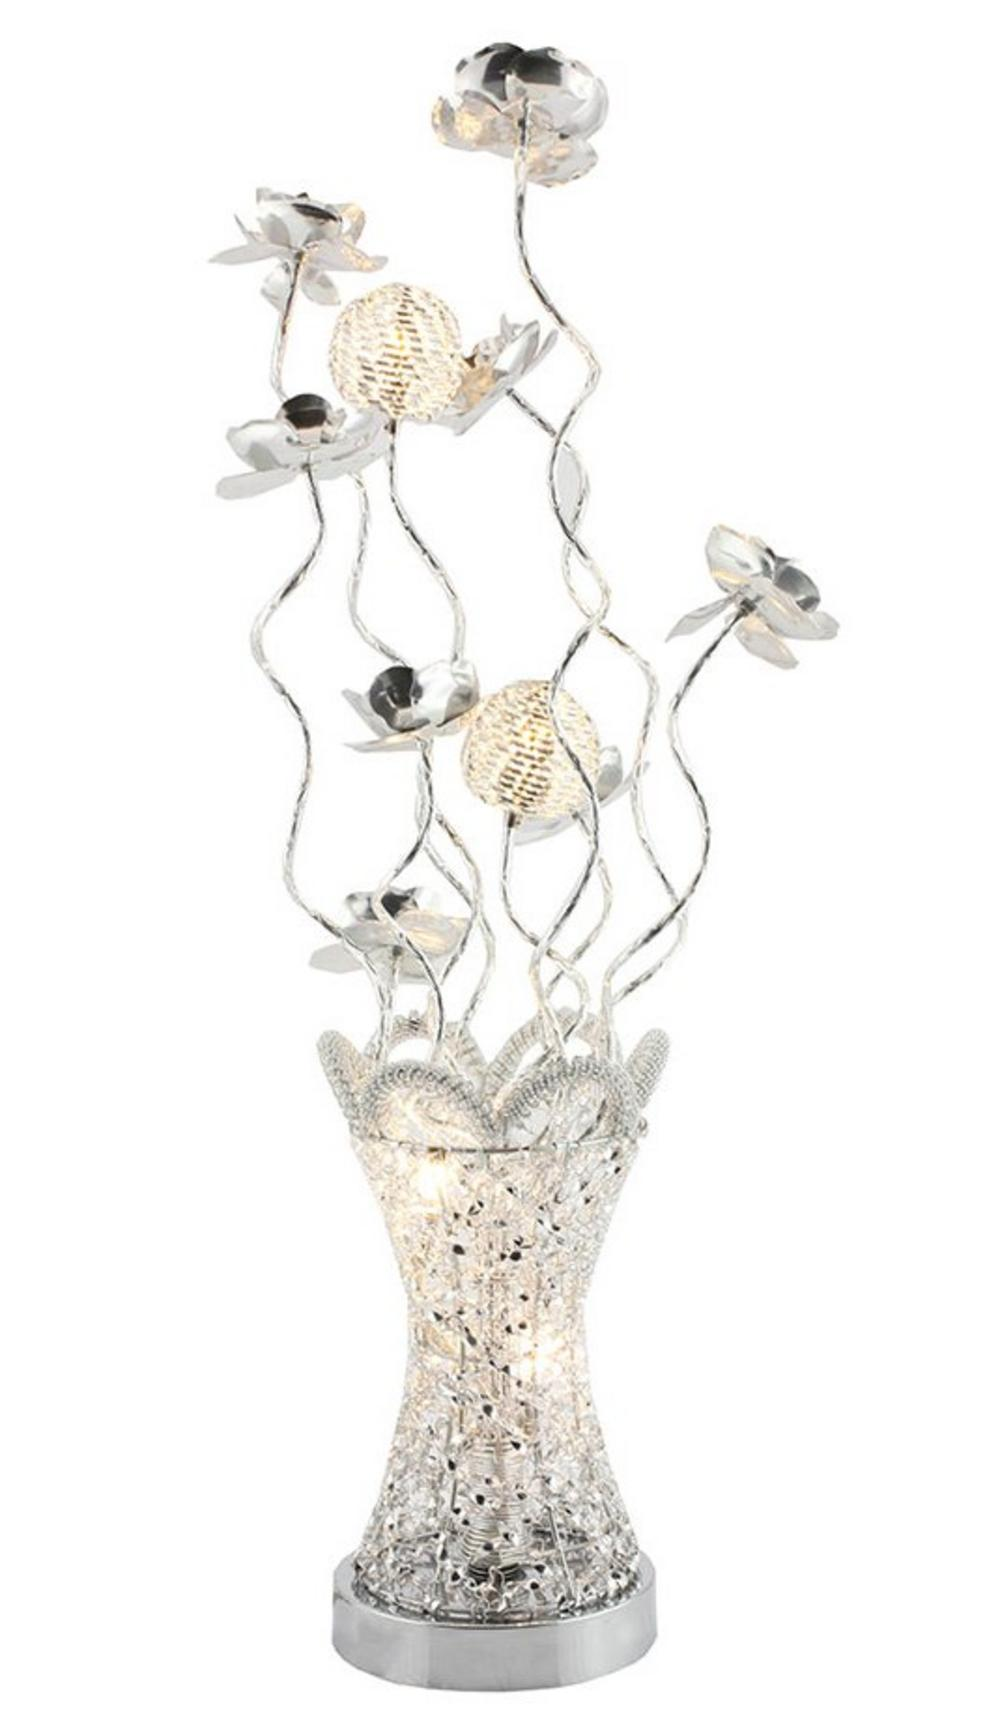 Crystal Vase Lamp Silver Small 80cm Tall